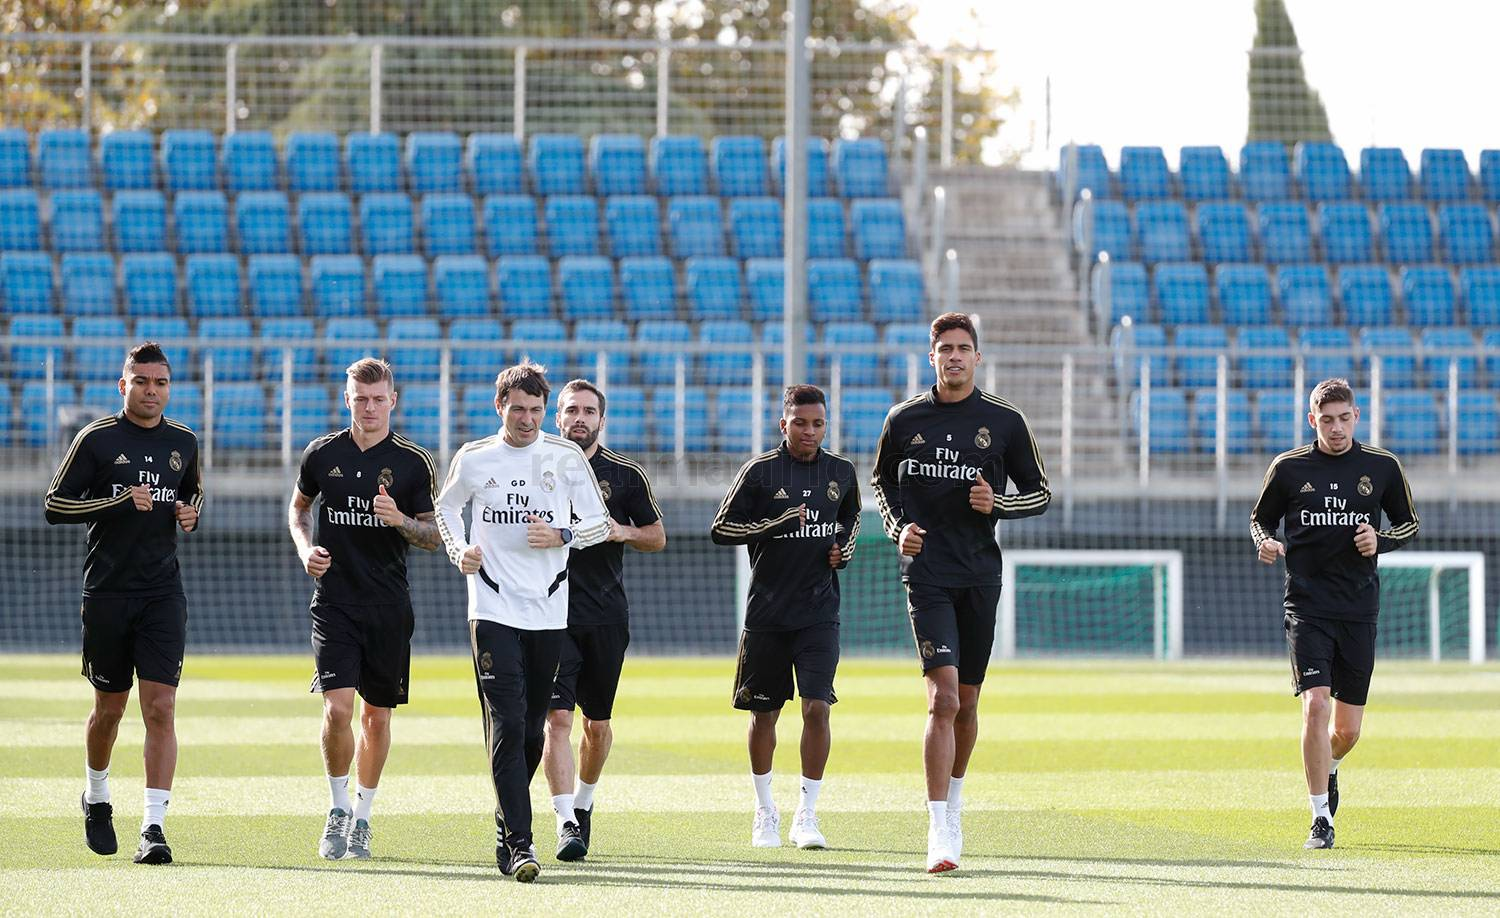 Real Madrid - Entrenamiento del Real Madrid  - 31-10-2019